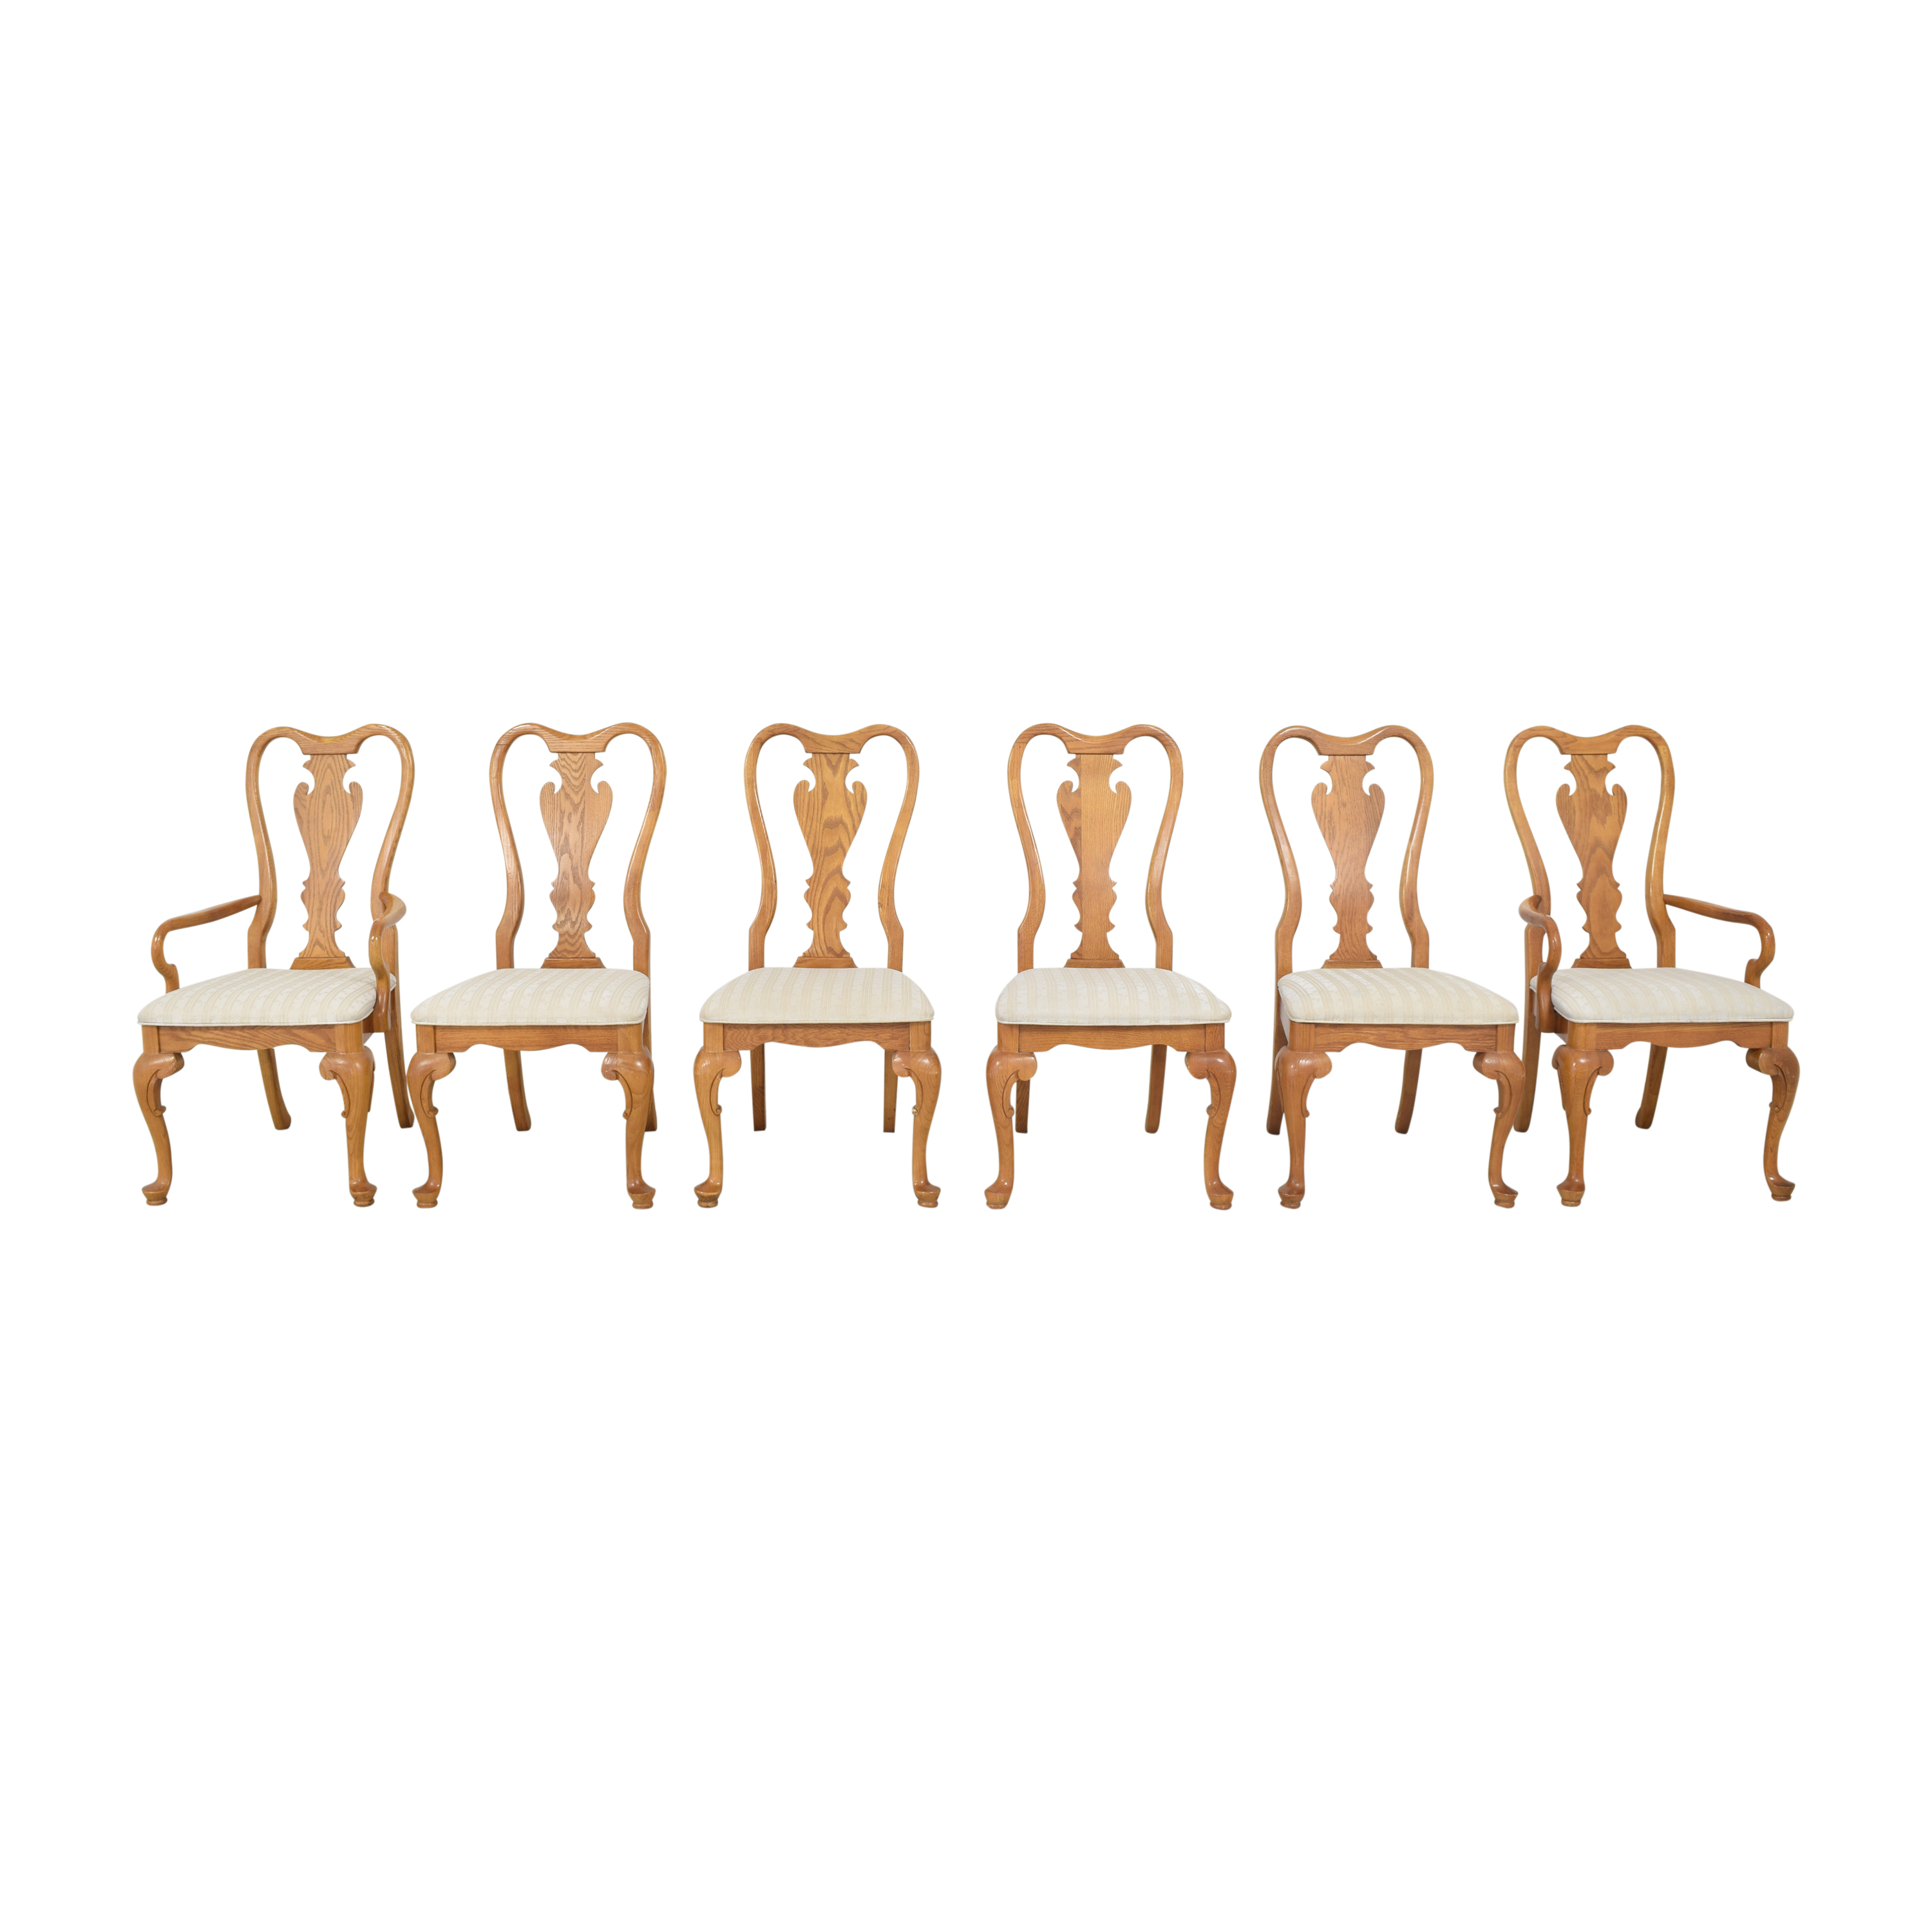 shop Sumter Cabinet Co. Dining Chairs Sumter Cabinet Co. Chairs